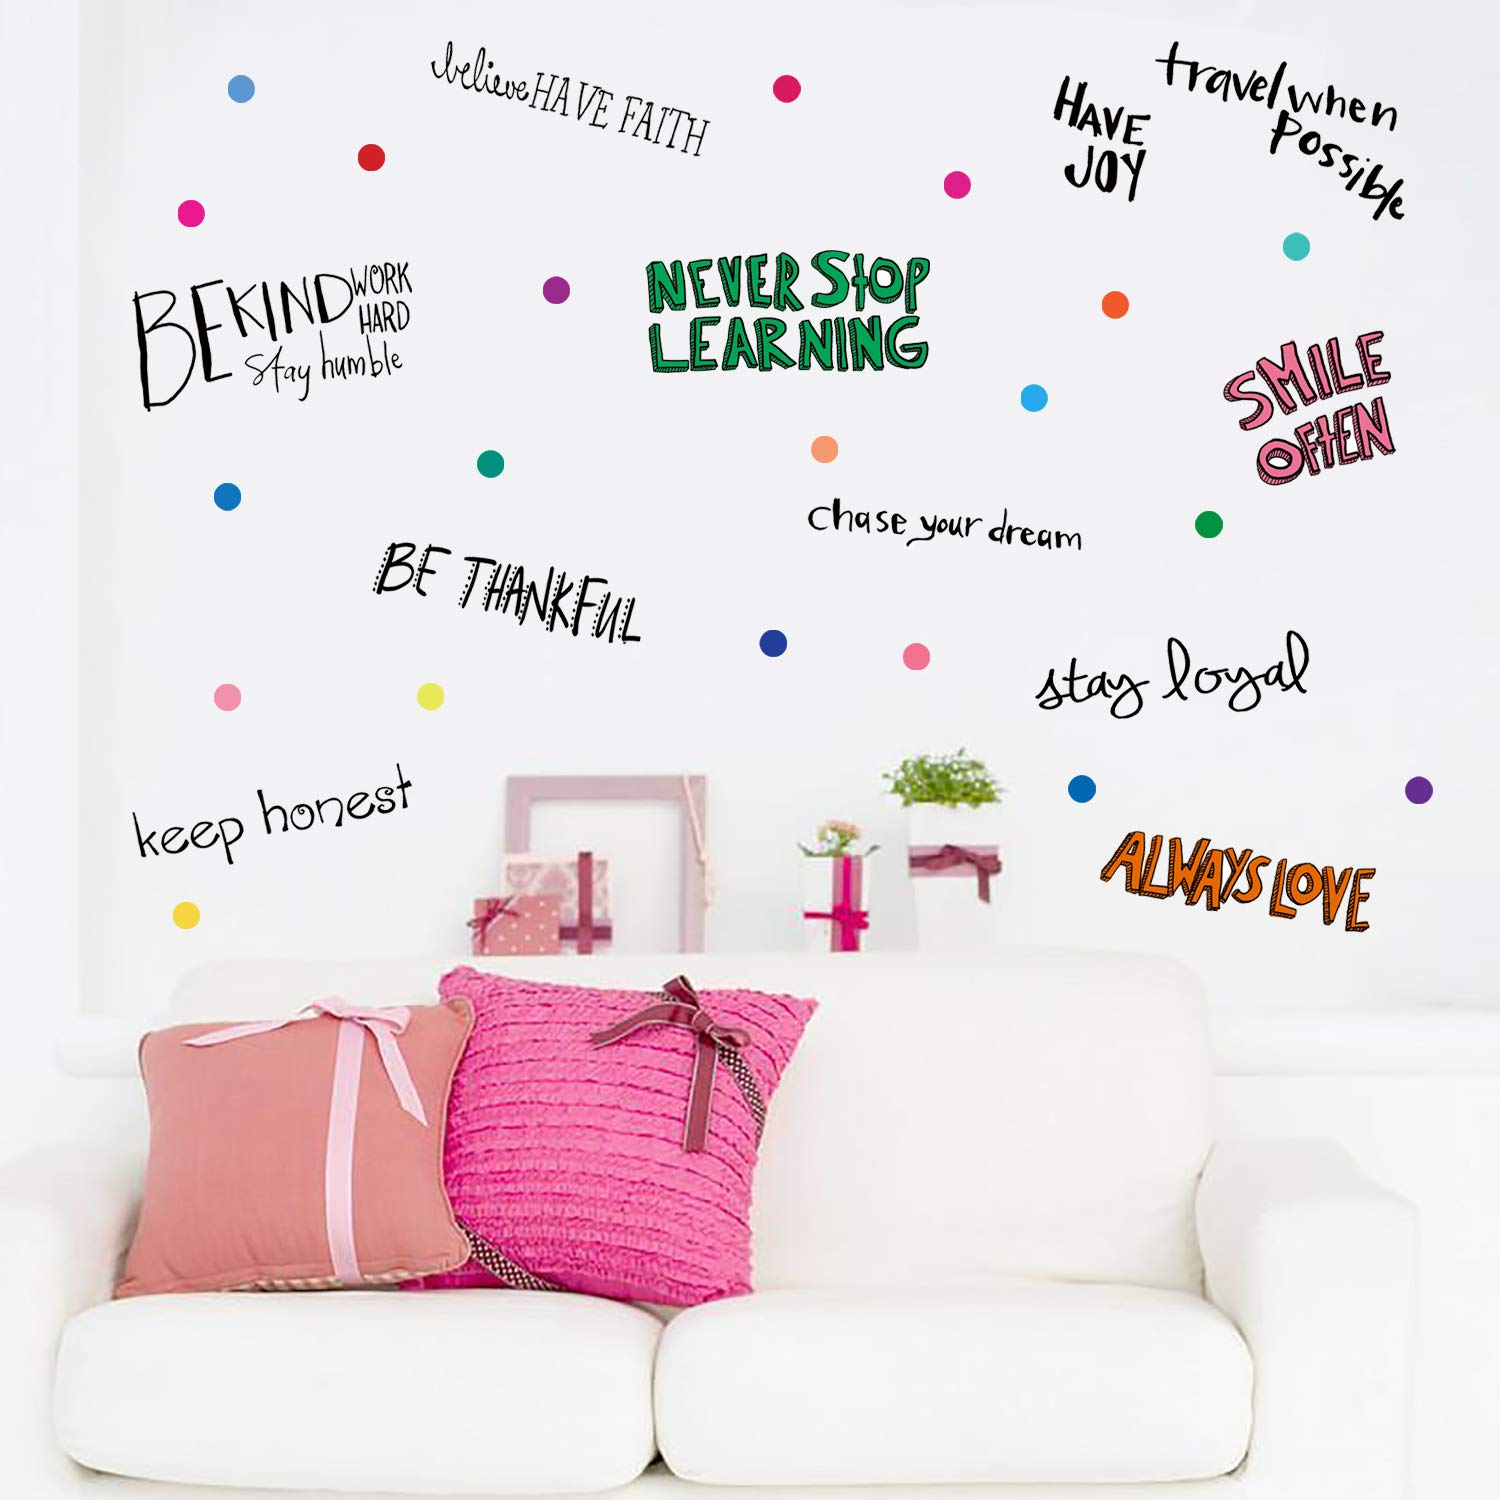 PARLAIM Inspirational Wall Decals Motivational Phrases Sticker Wall Decals Quotes Removable Decals for Kids Home Decoration Living Room Bedroom, Positive Sayings Window Cling Decor and Classroom